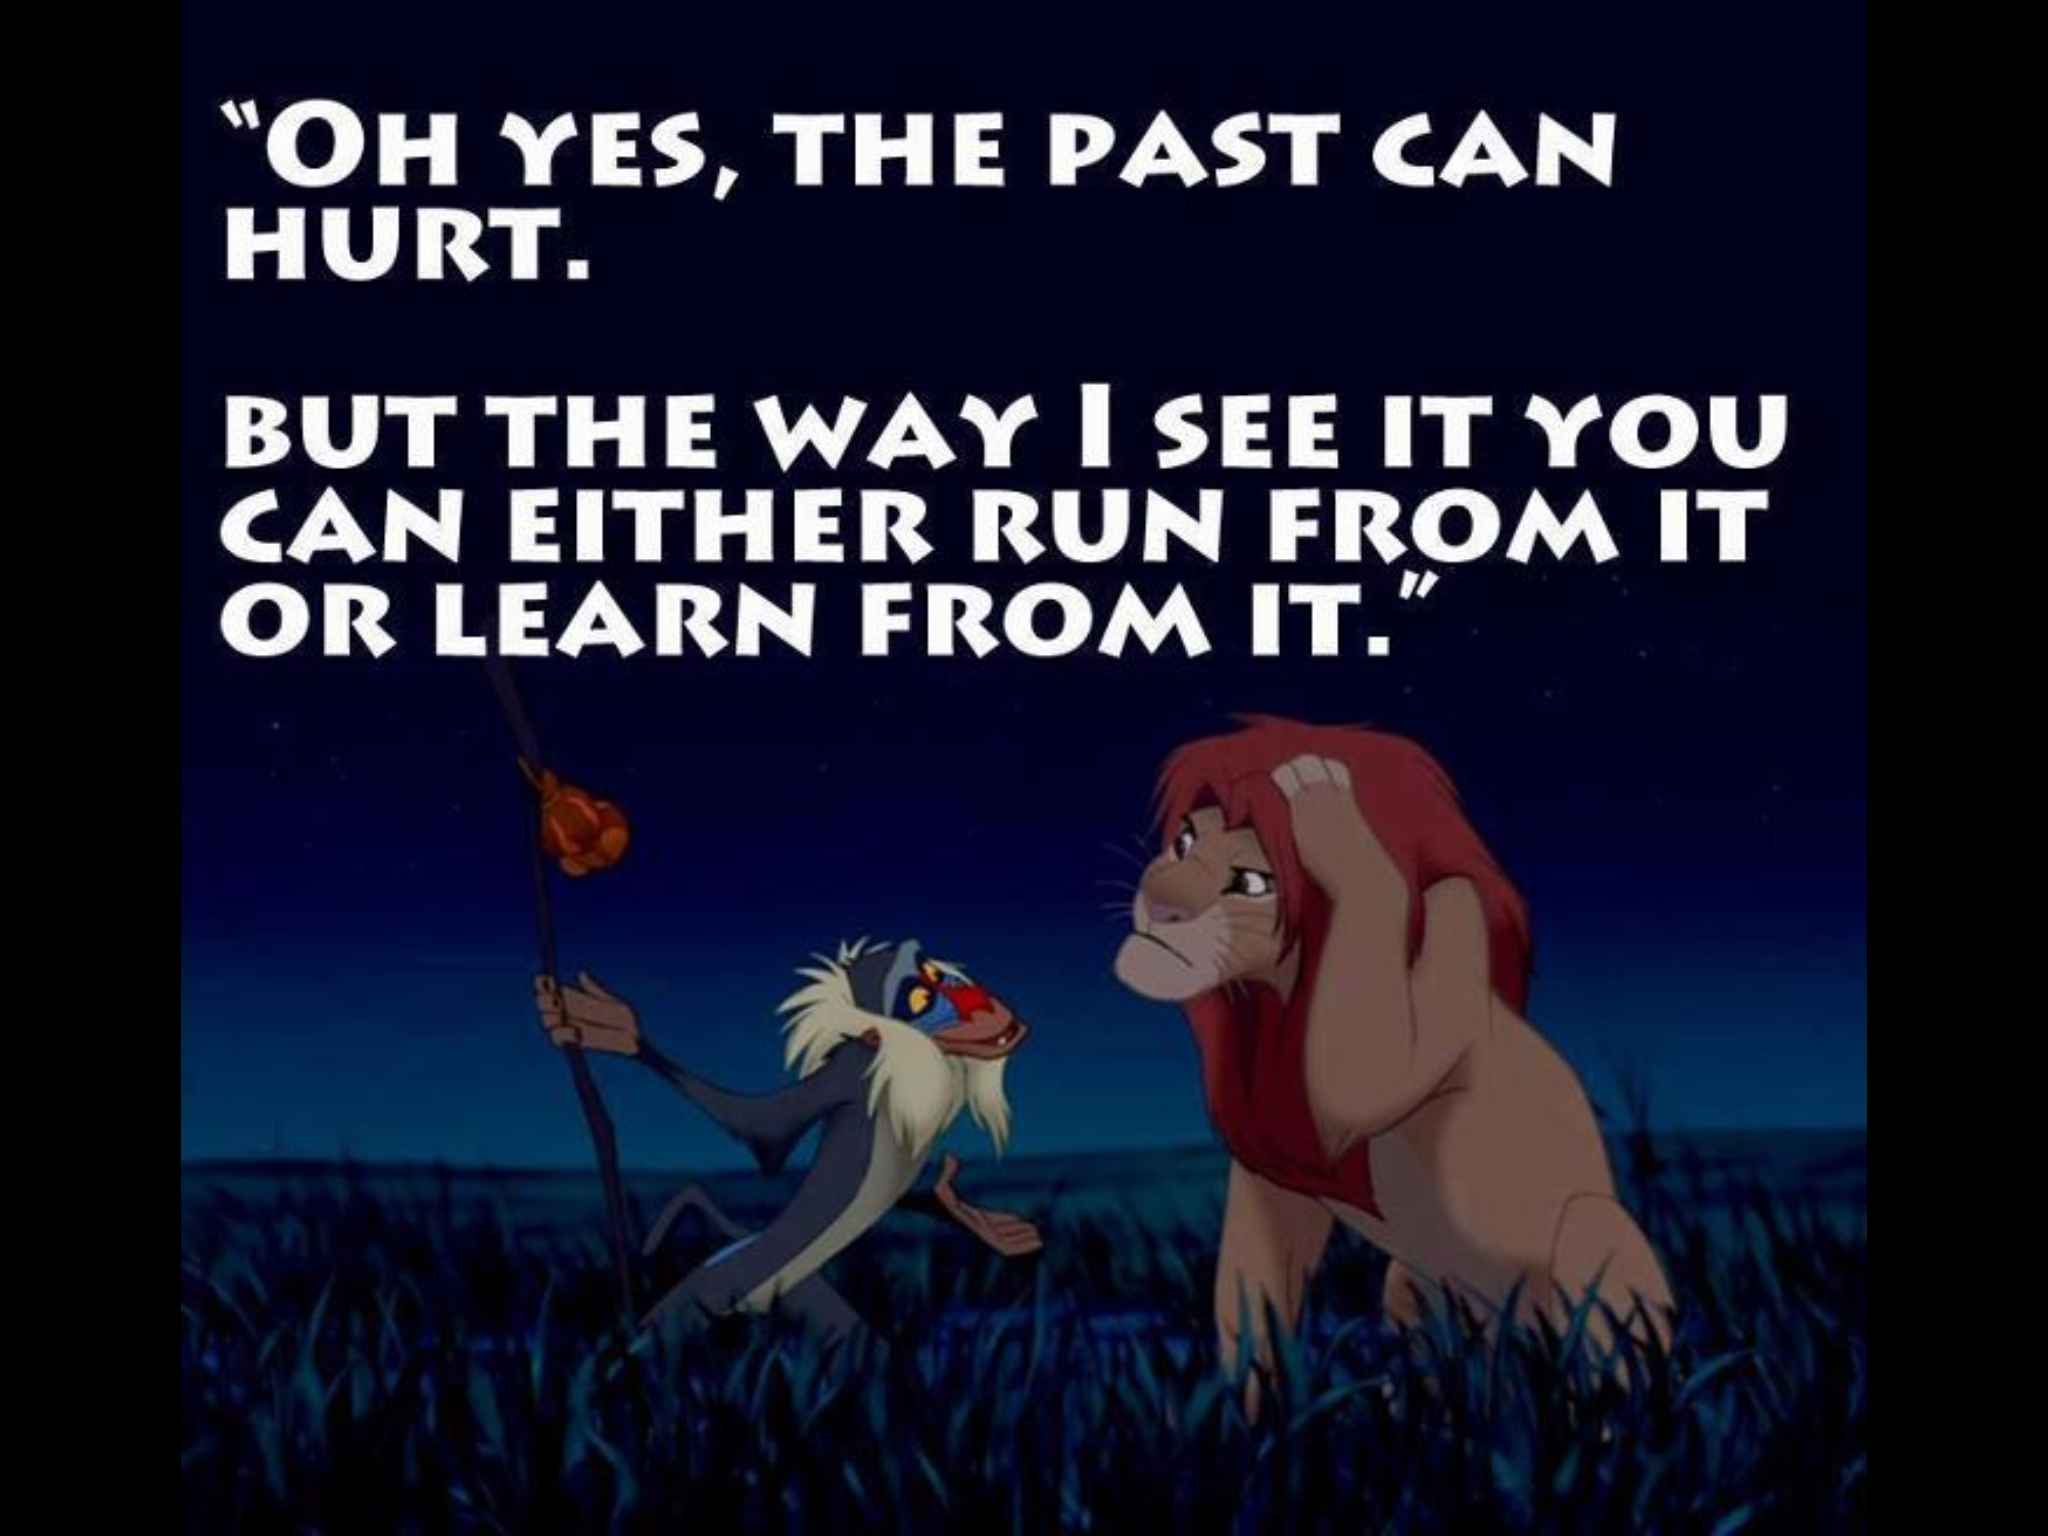 Disney Love Quotes : Disney Famous Quotes About Love. QuotesGram